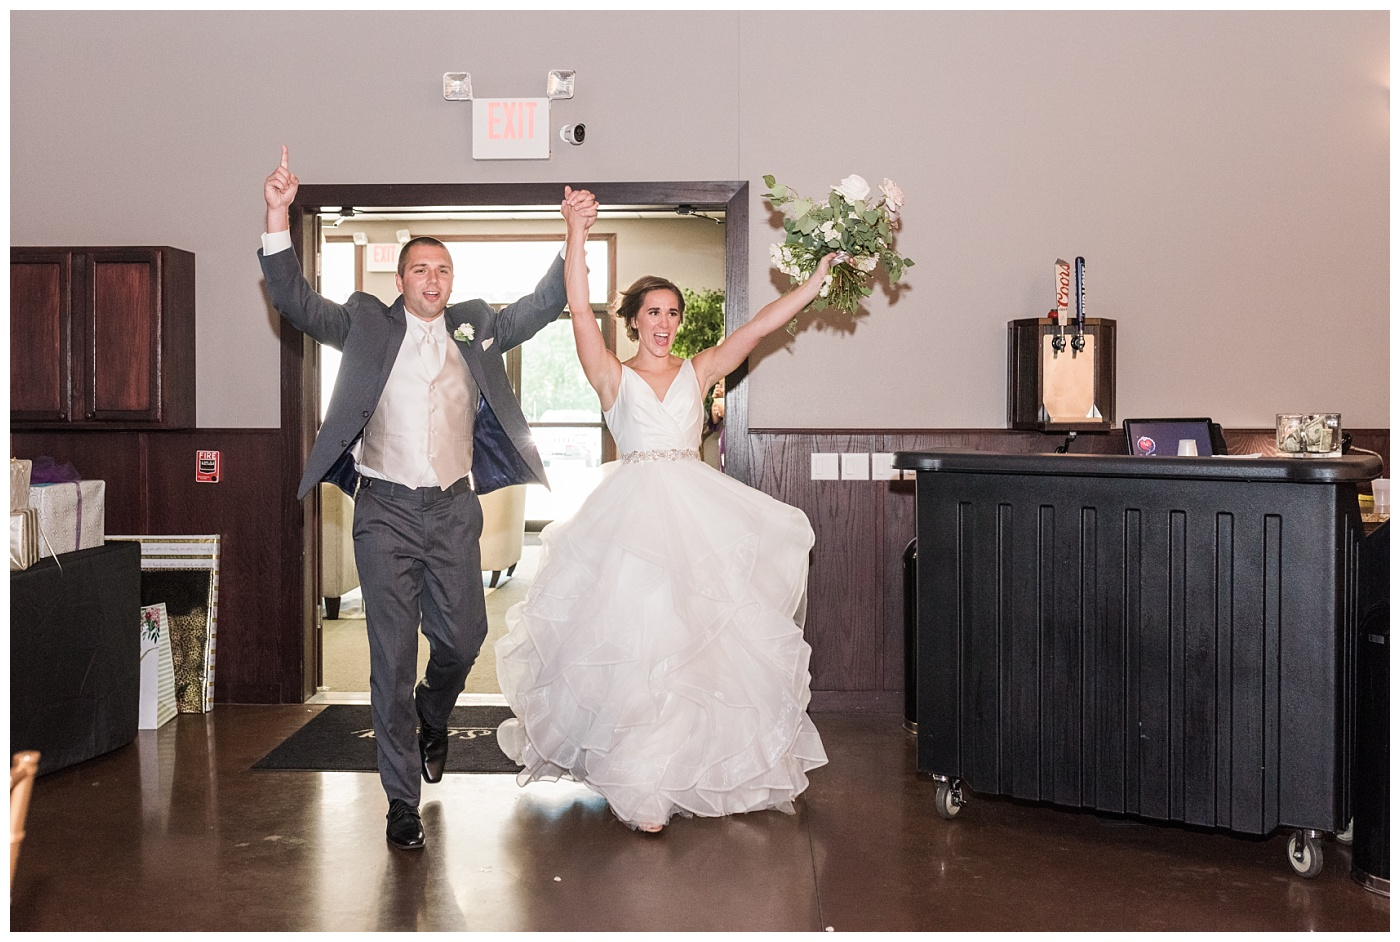 Stephanie Marie Photography Newman Catholic Center Ceremony Bella Sala Reception Tiffin Iowa City Wedding Photographer Chelsey Justin Meyers_0036-1.jpg